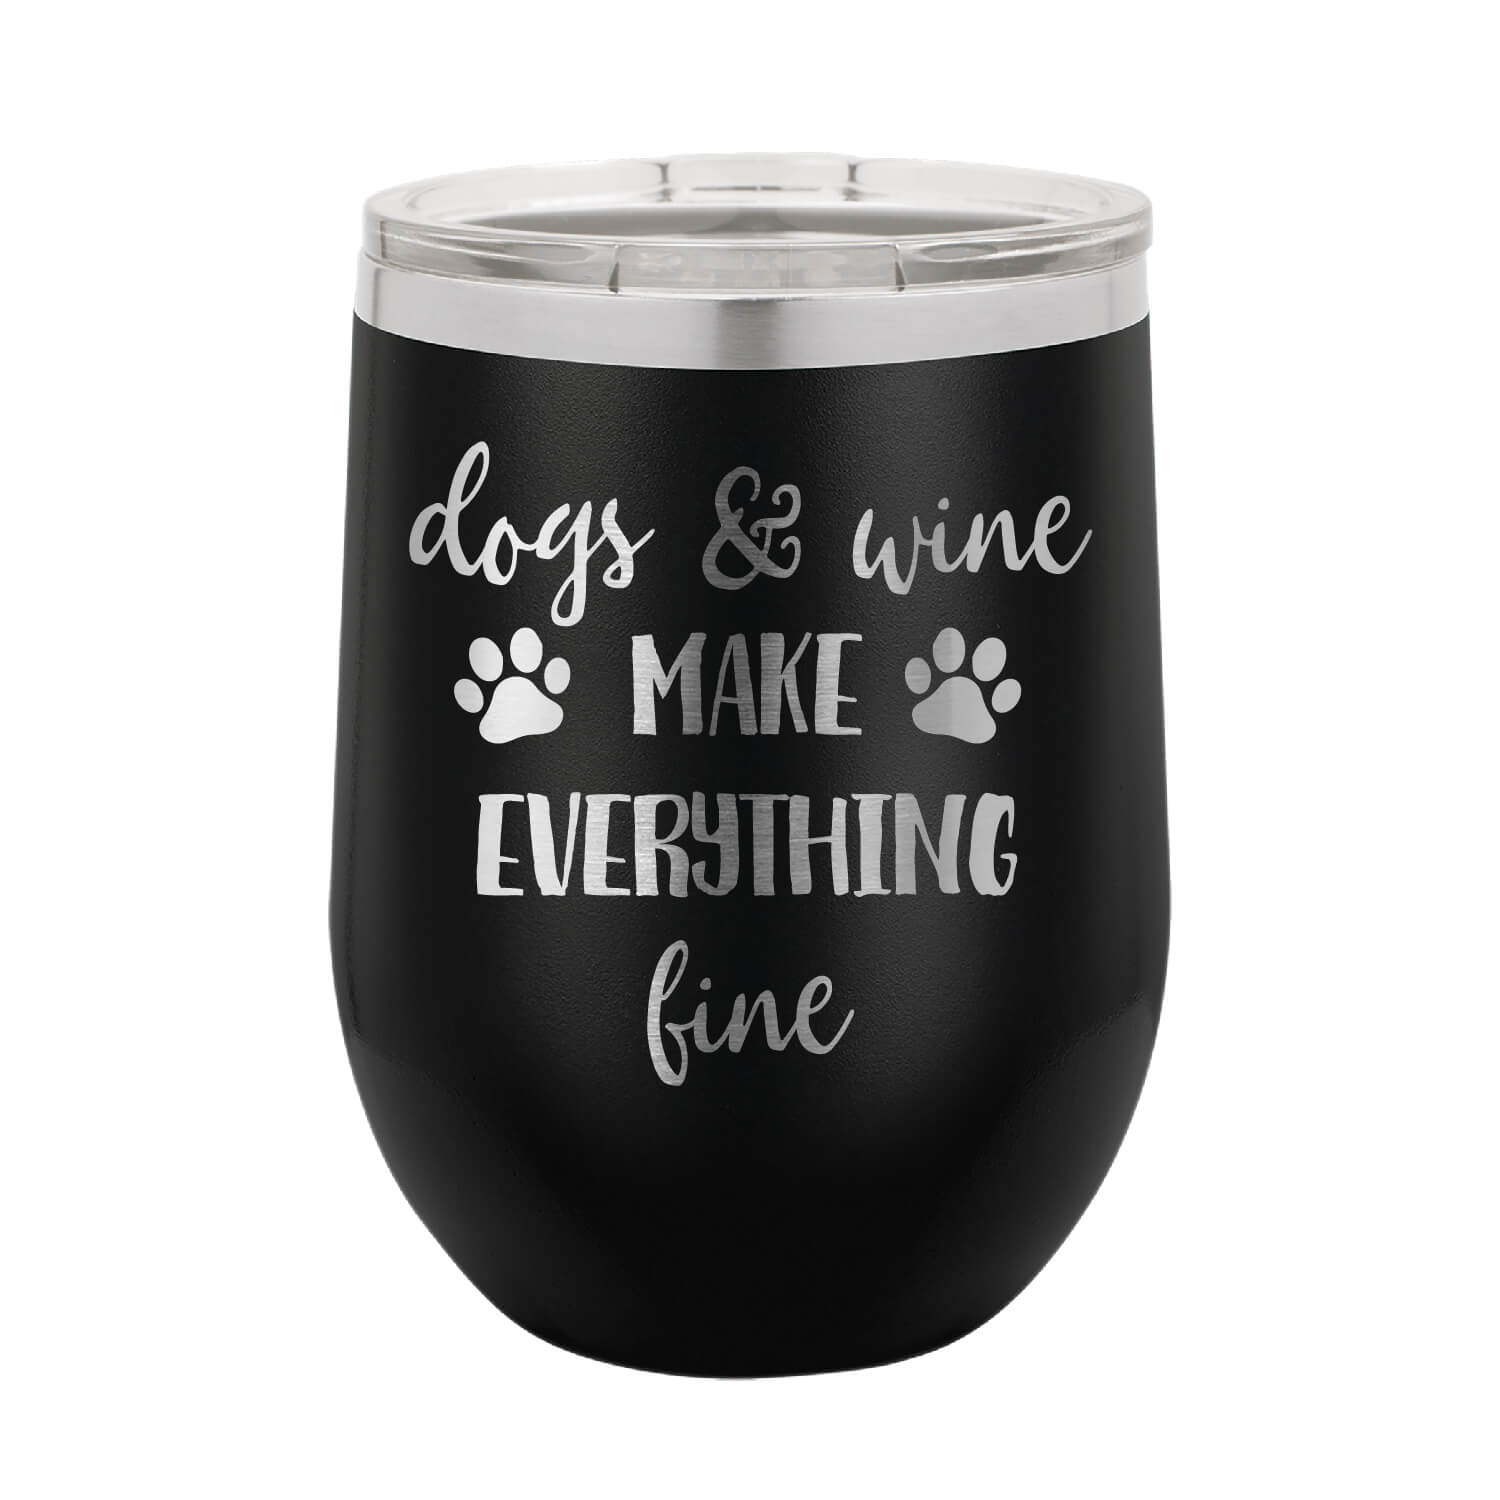 Dogs and Wine Make Everything Fine Wine Tumbler